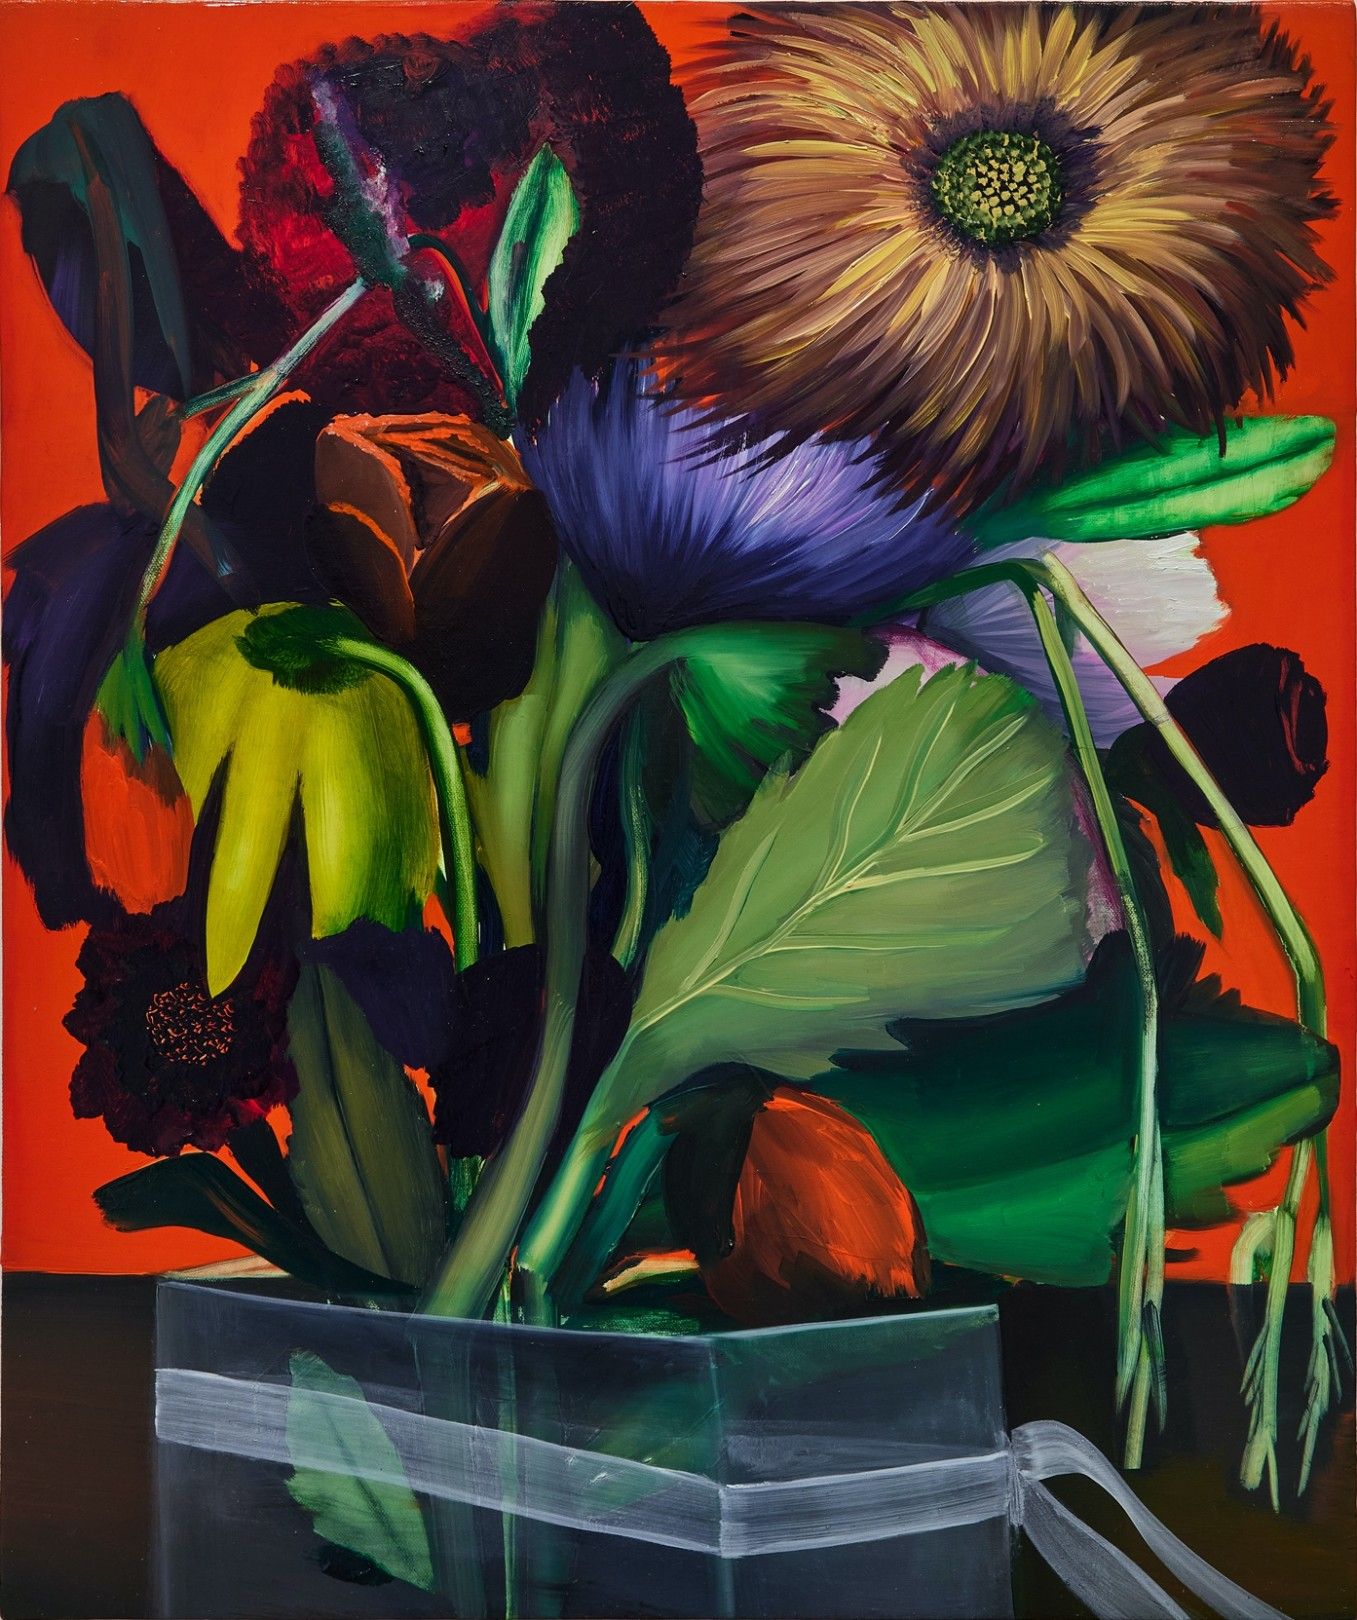 Bouquet #4, 2021 Oil on canvas 61 x 51 cm. / 24 x 20 in.